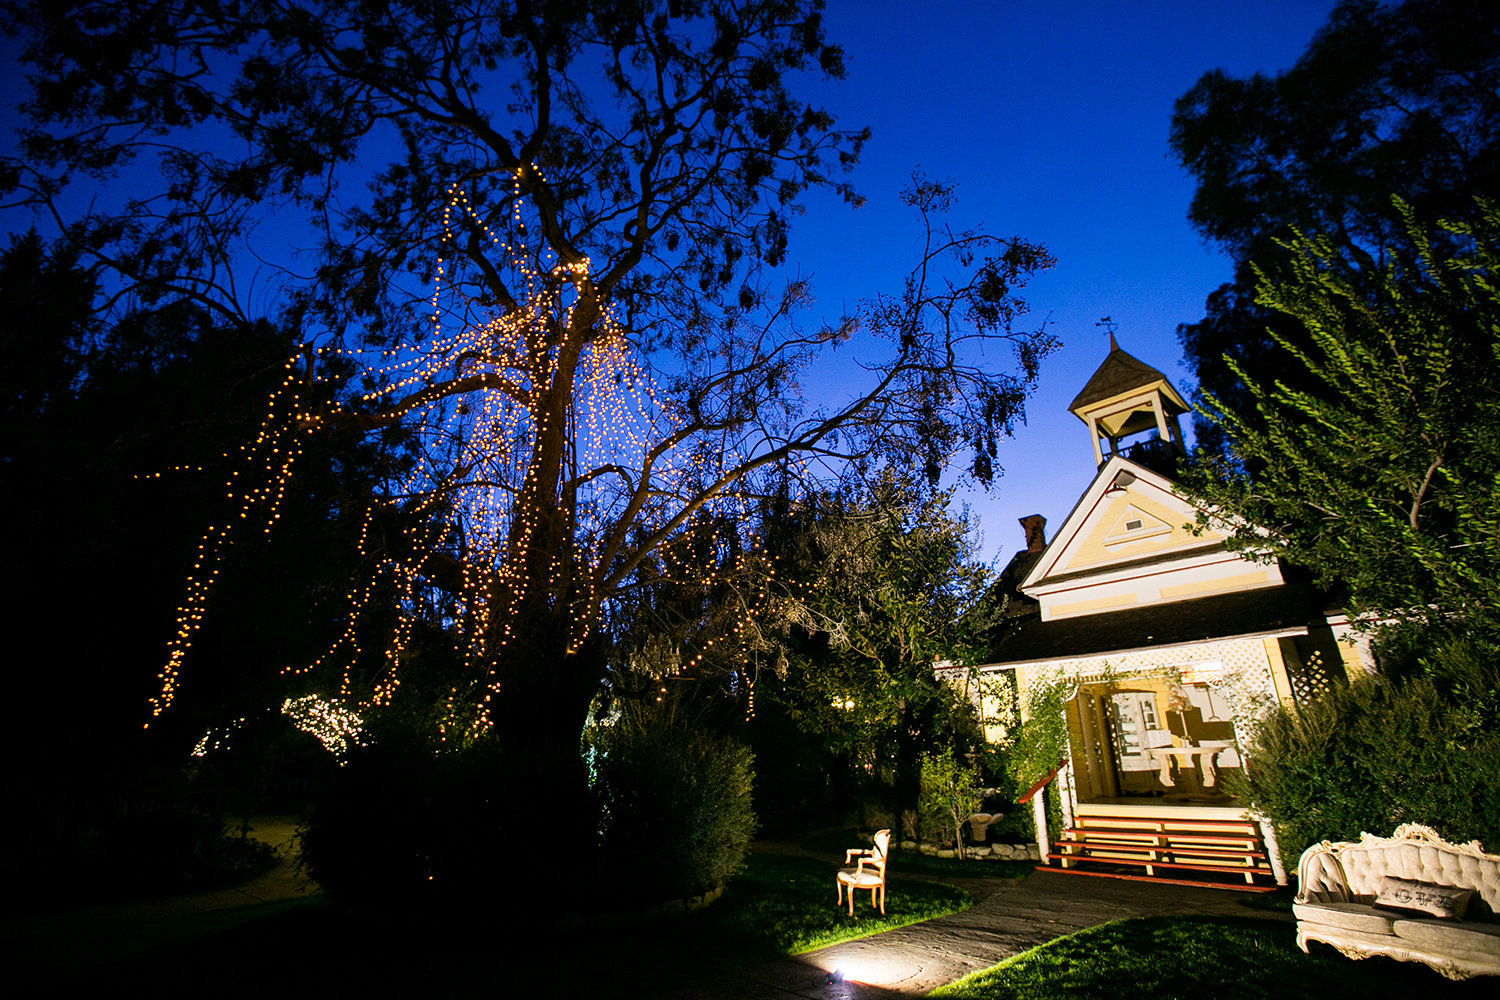 Twin Oaks Schoolhouse lit up at night